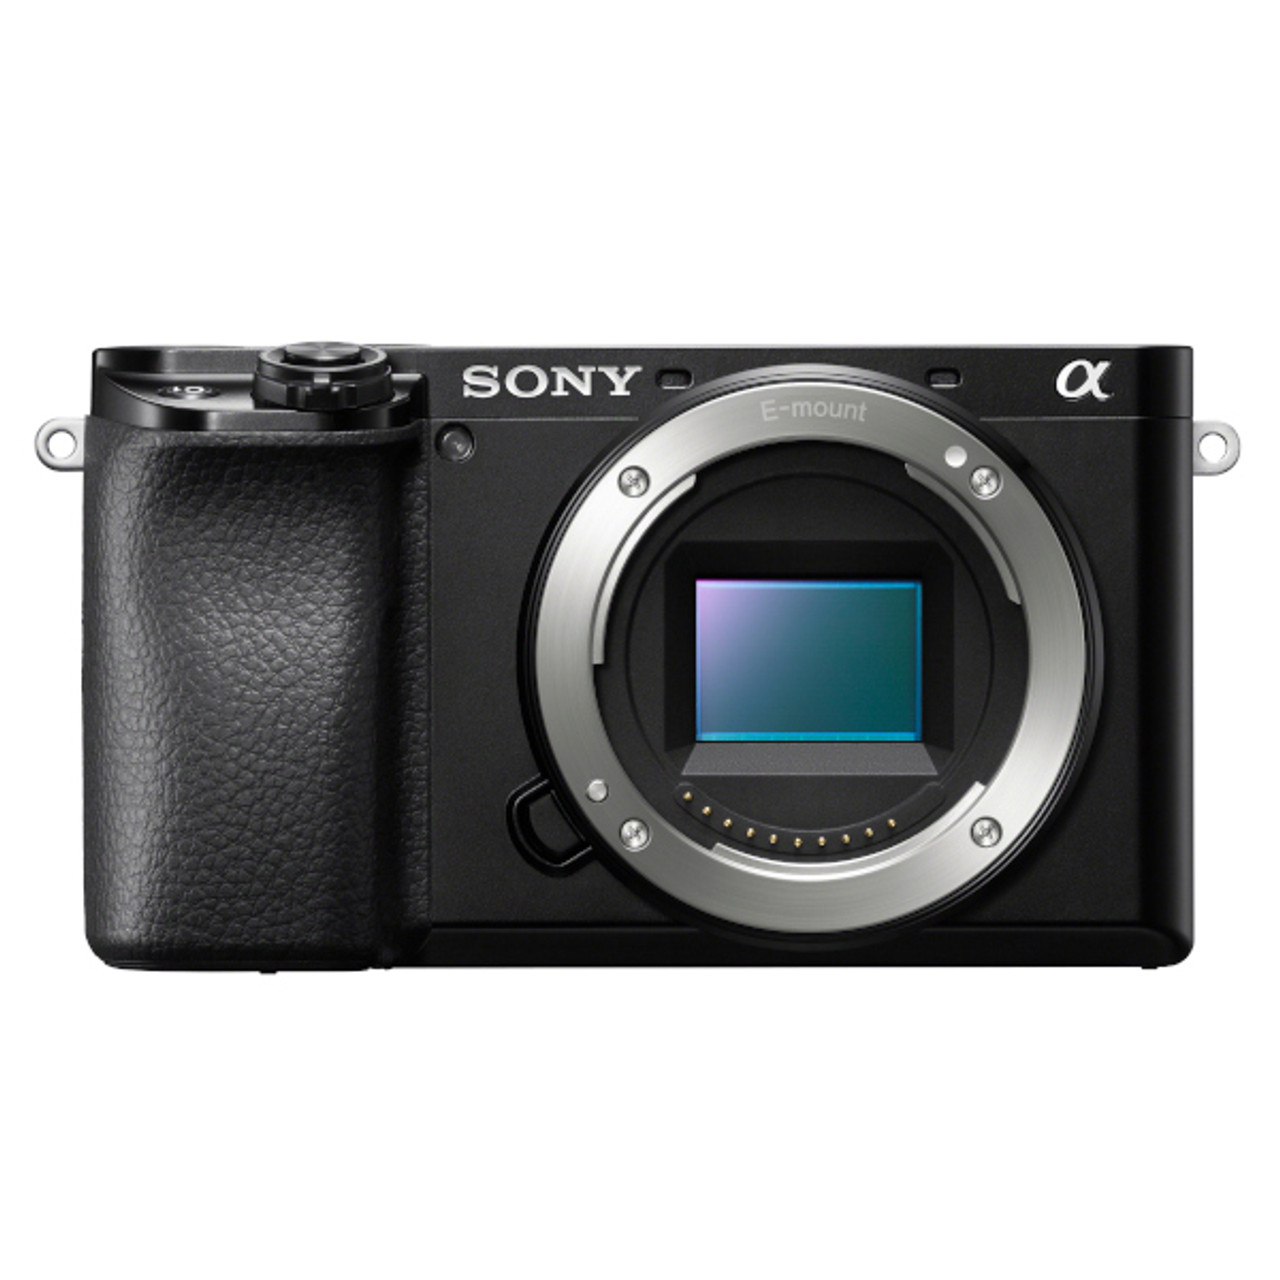 Sony A6100 Body (Black)